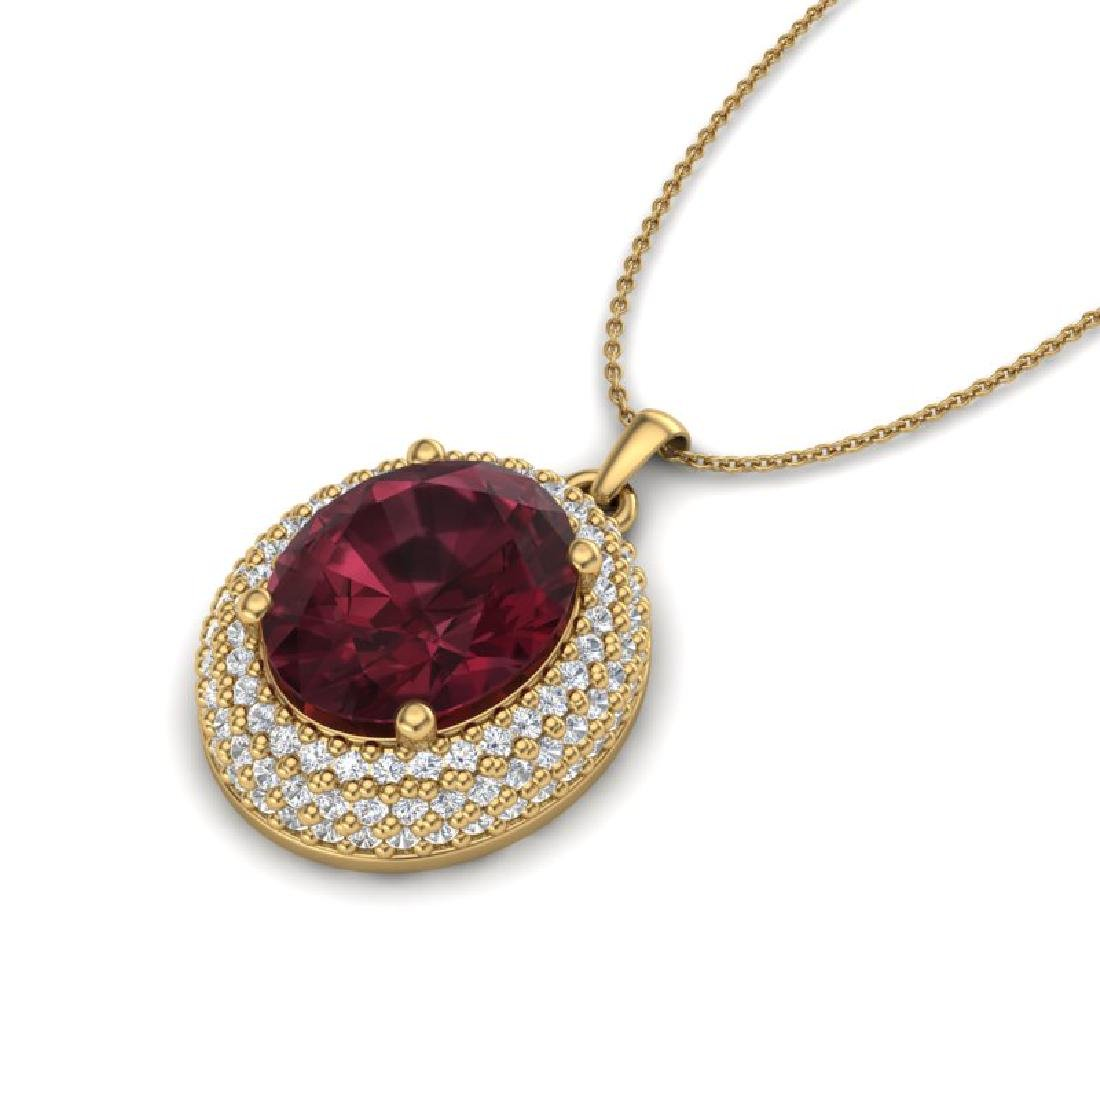 4.50 CTW Garnet & Micro Pave VS/SI Diamond Necklace 18K - 2